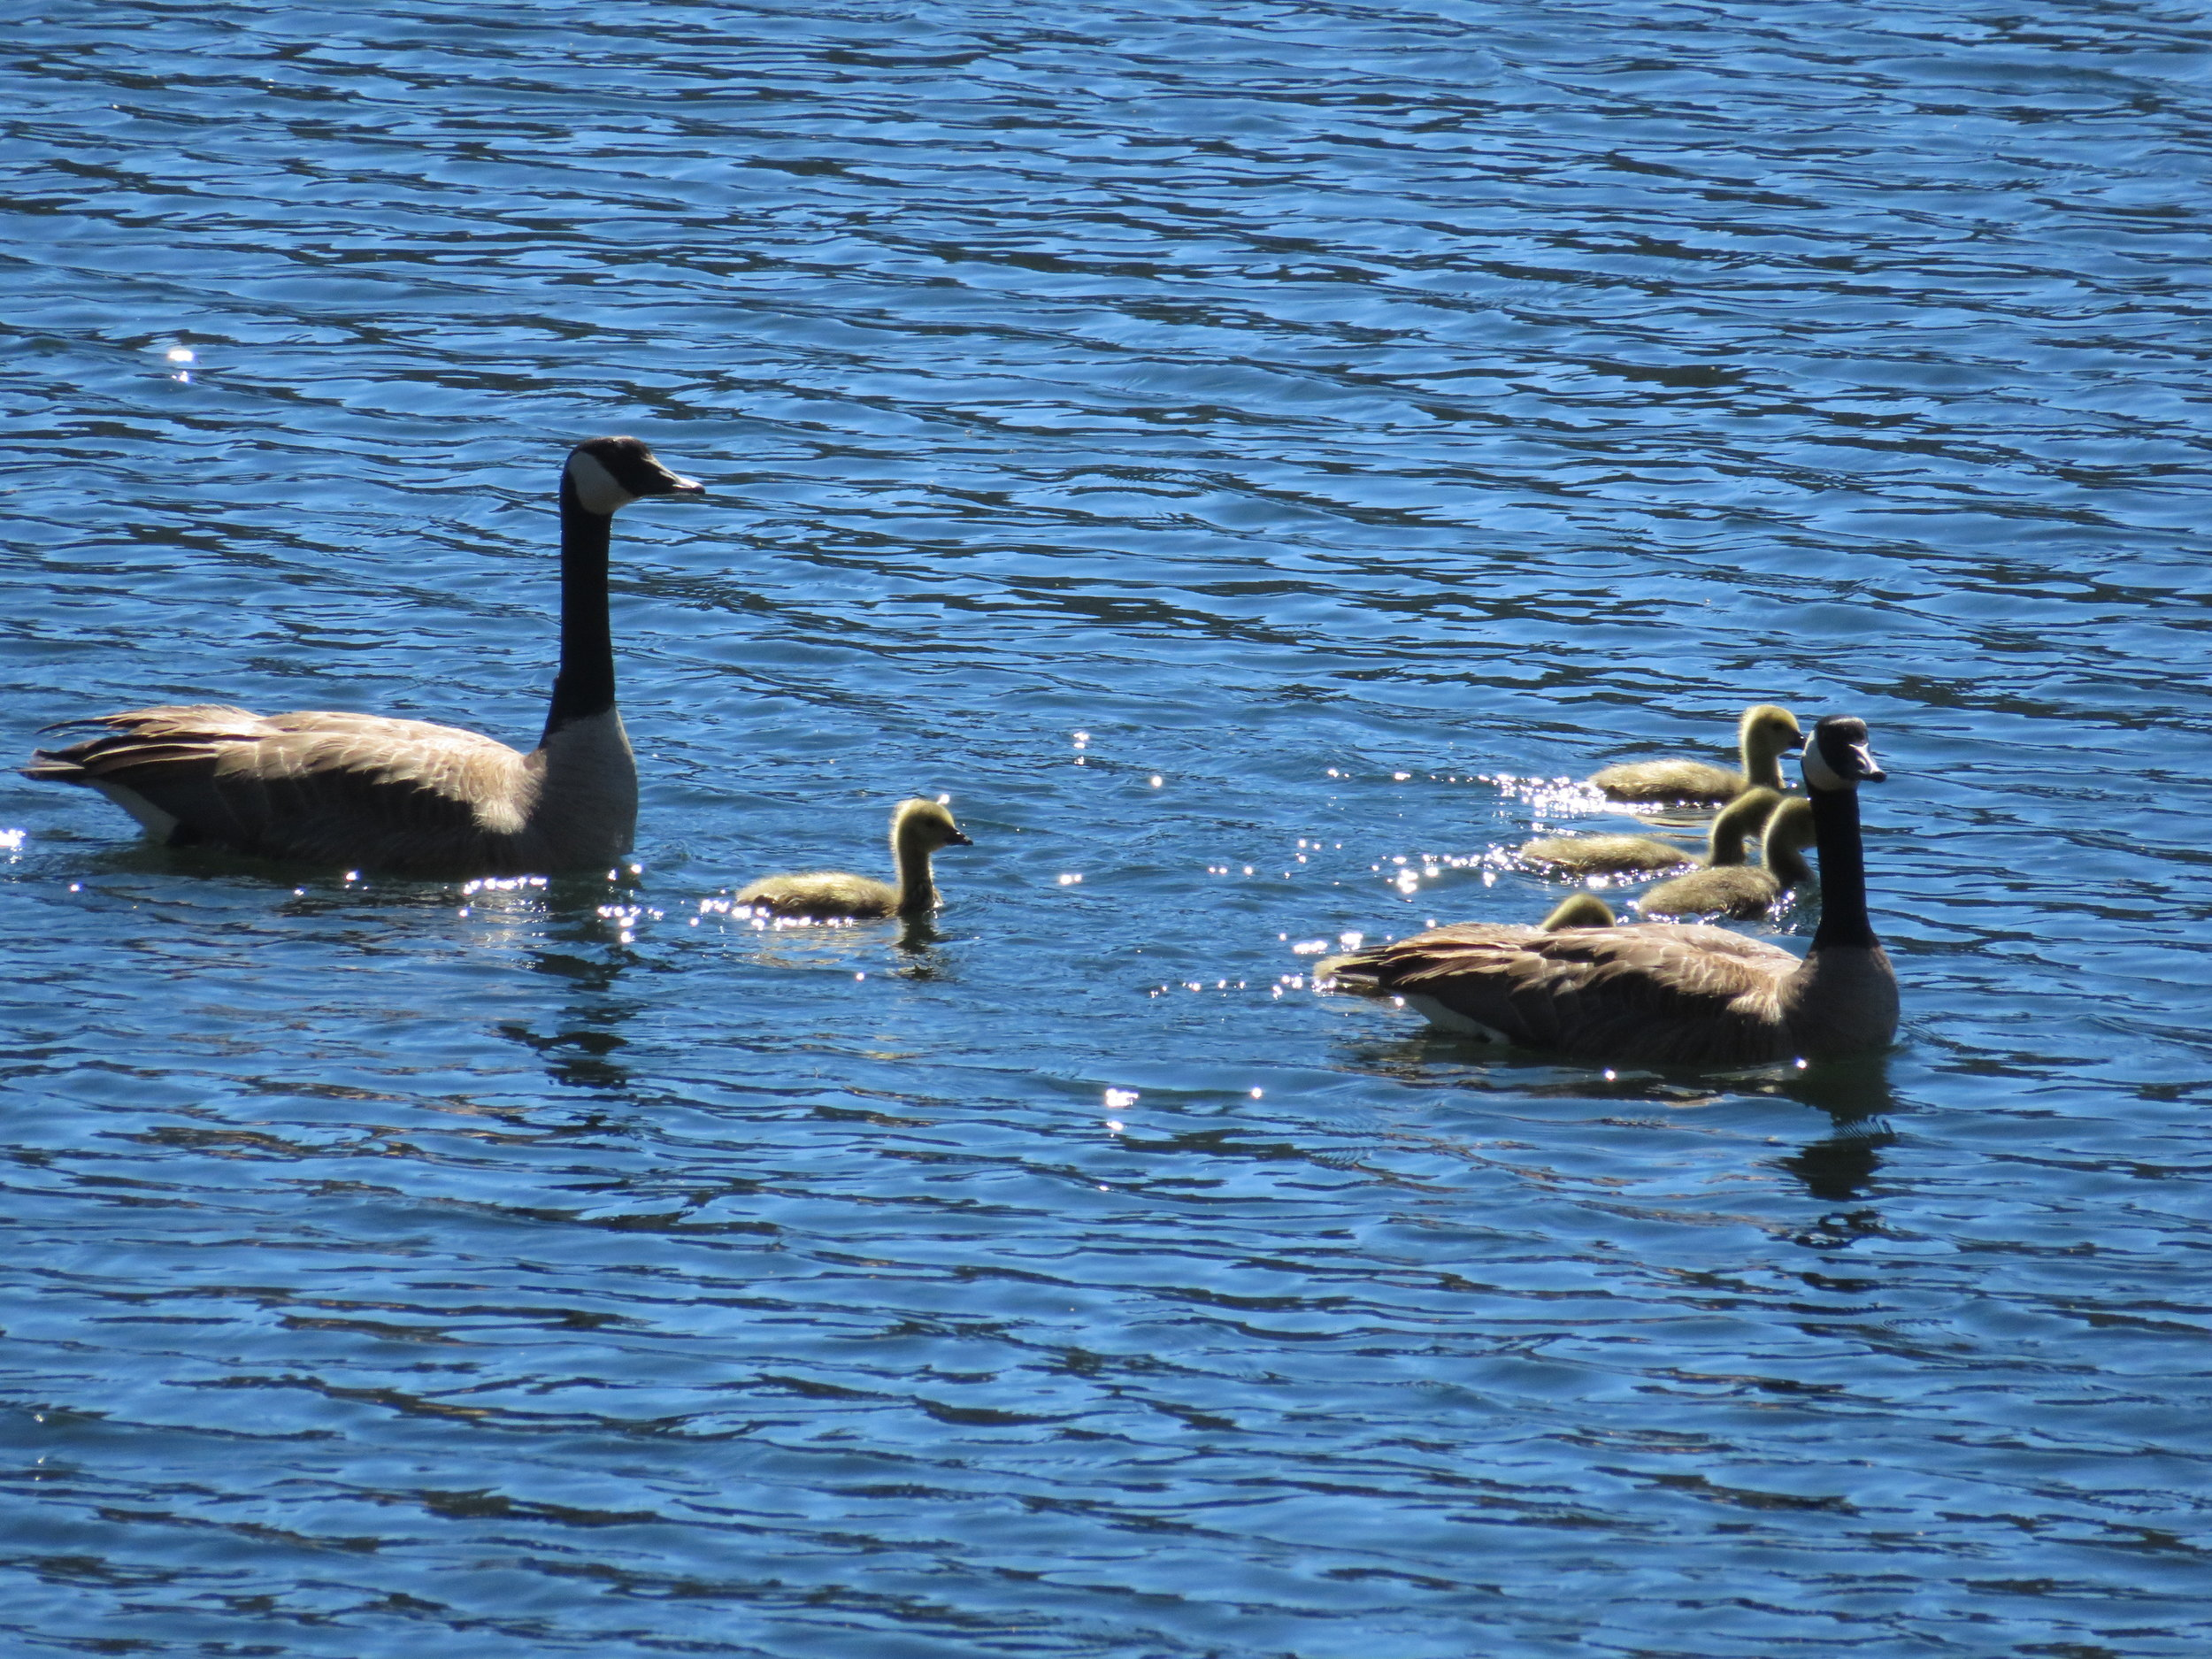 Taking the family for a morning swim